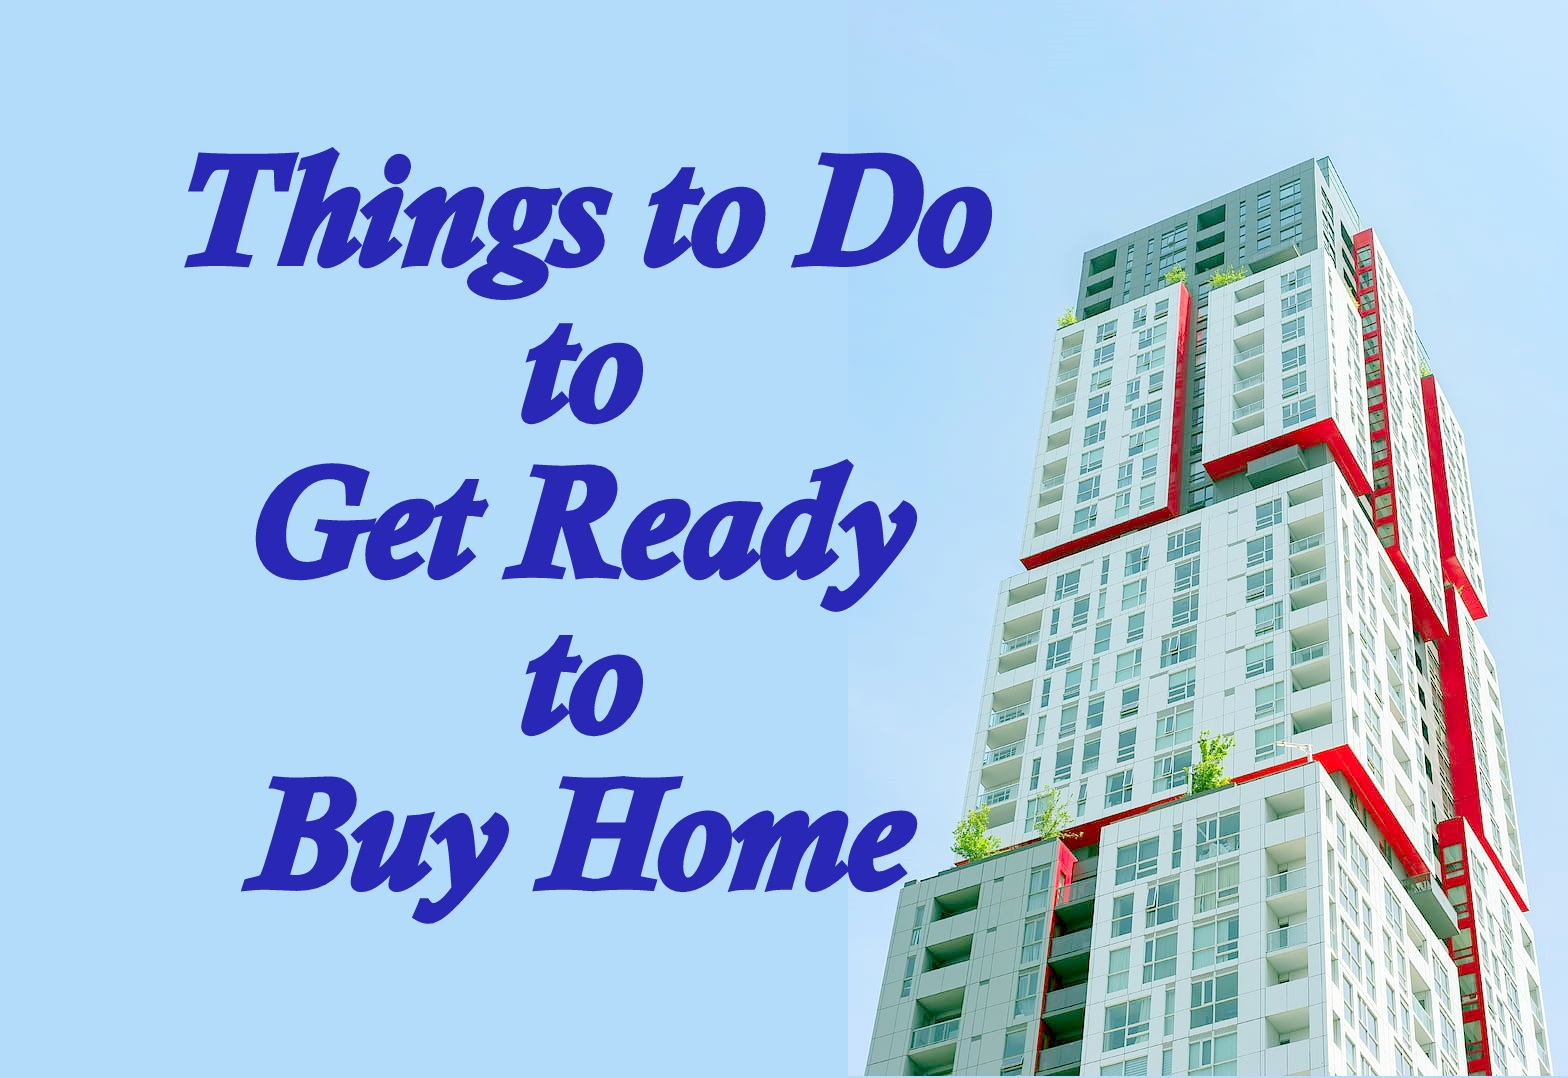 Things to Do to Get Ready to Buy Home